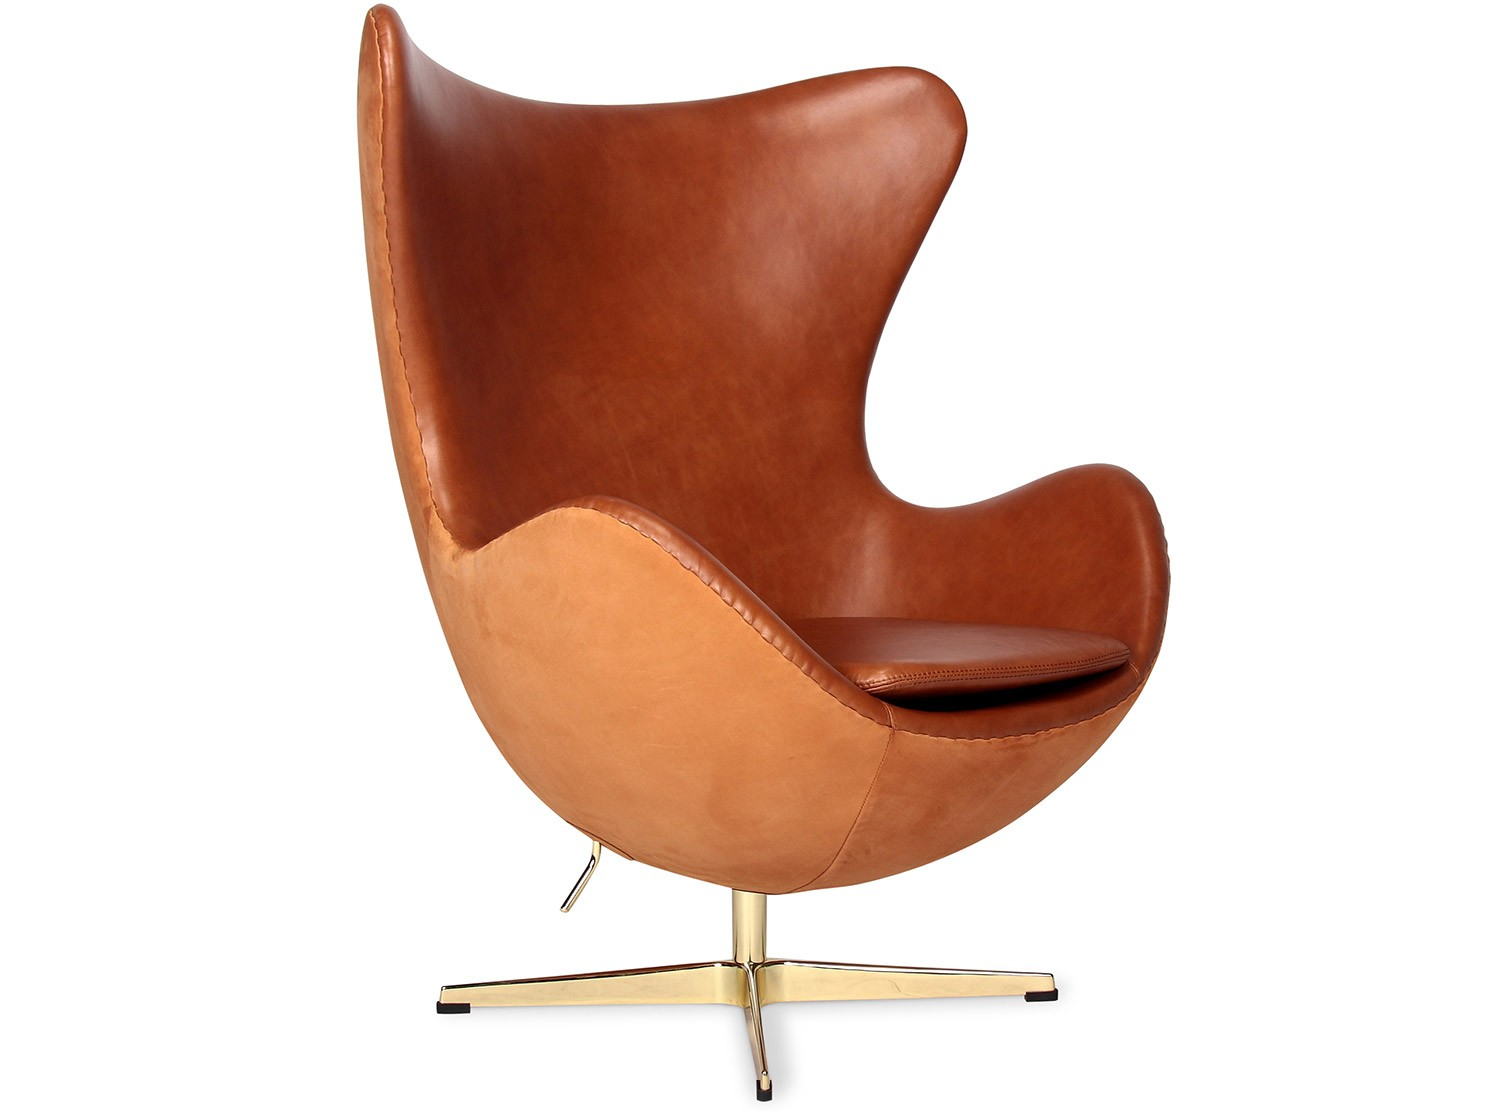 Egg chair arne jacobsen arne jacobsen arne jacobsen la for Chaise arne jacobsen